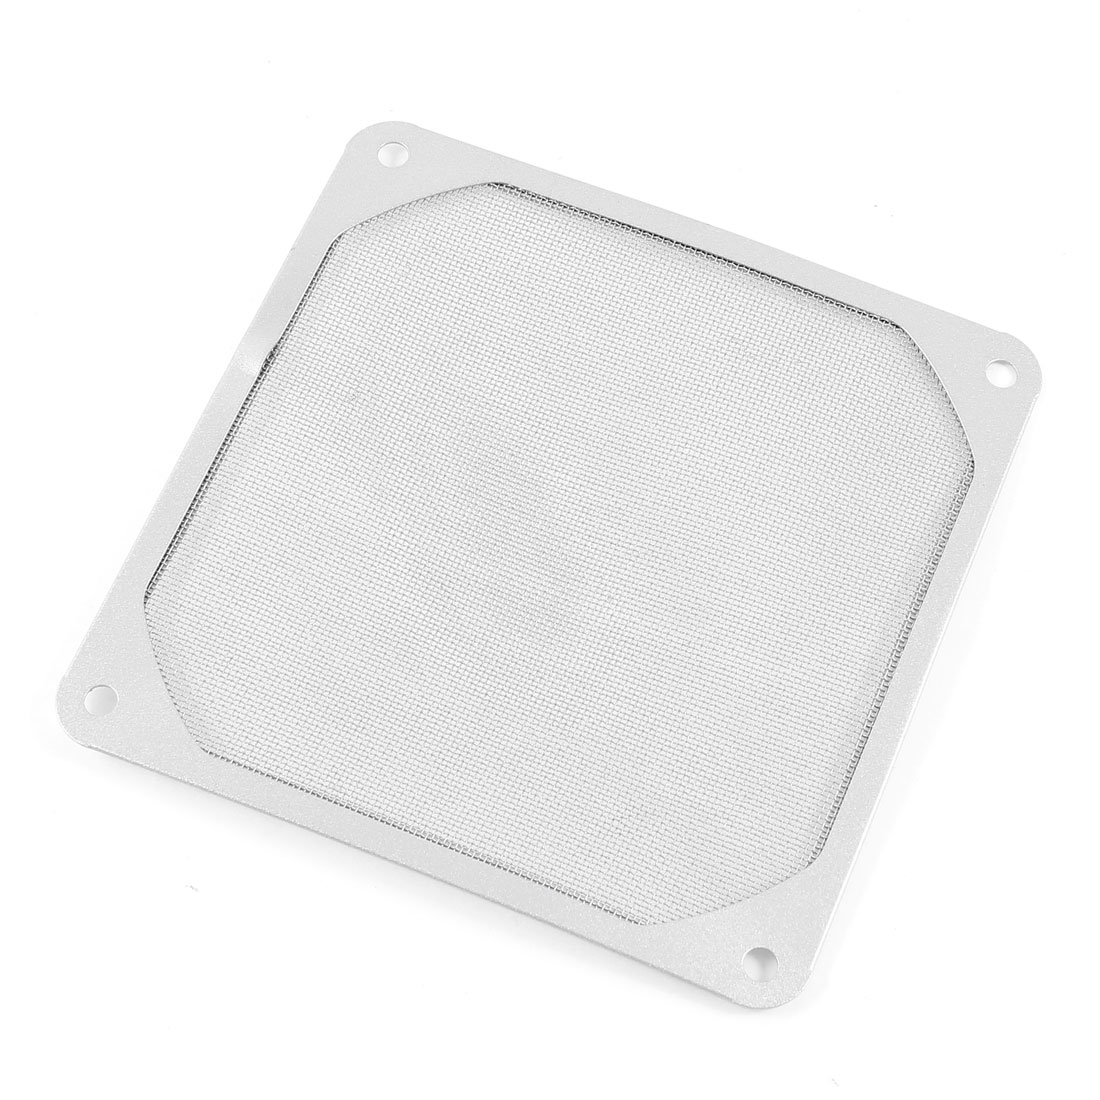 Computer PC Fan Filter Aluminum Mesh Dust Guard Silver Tone 90mm x 90mm